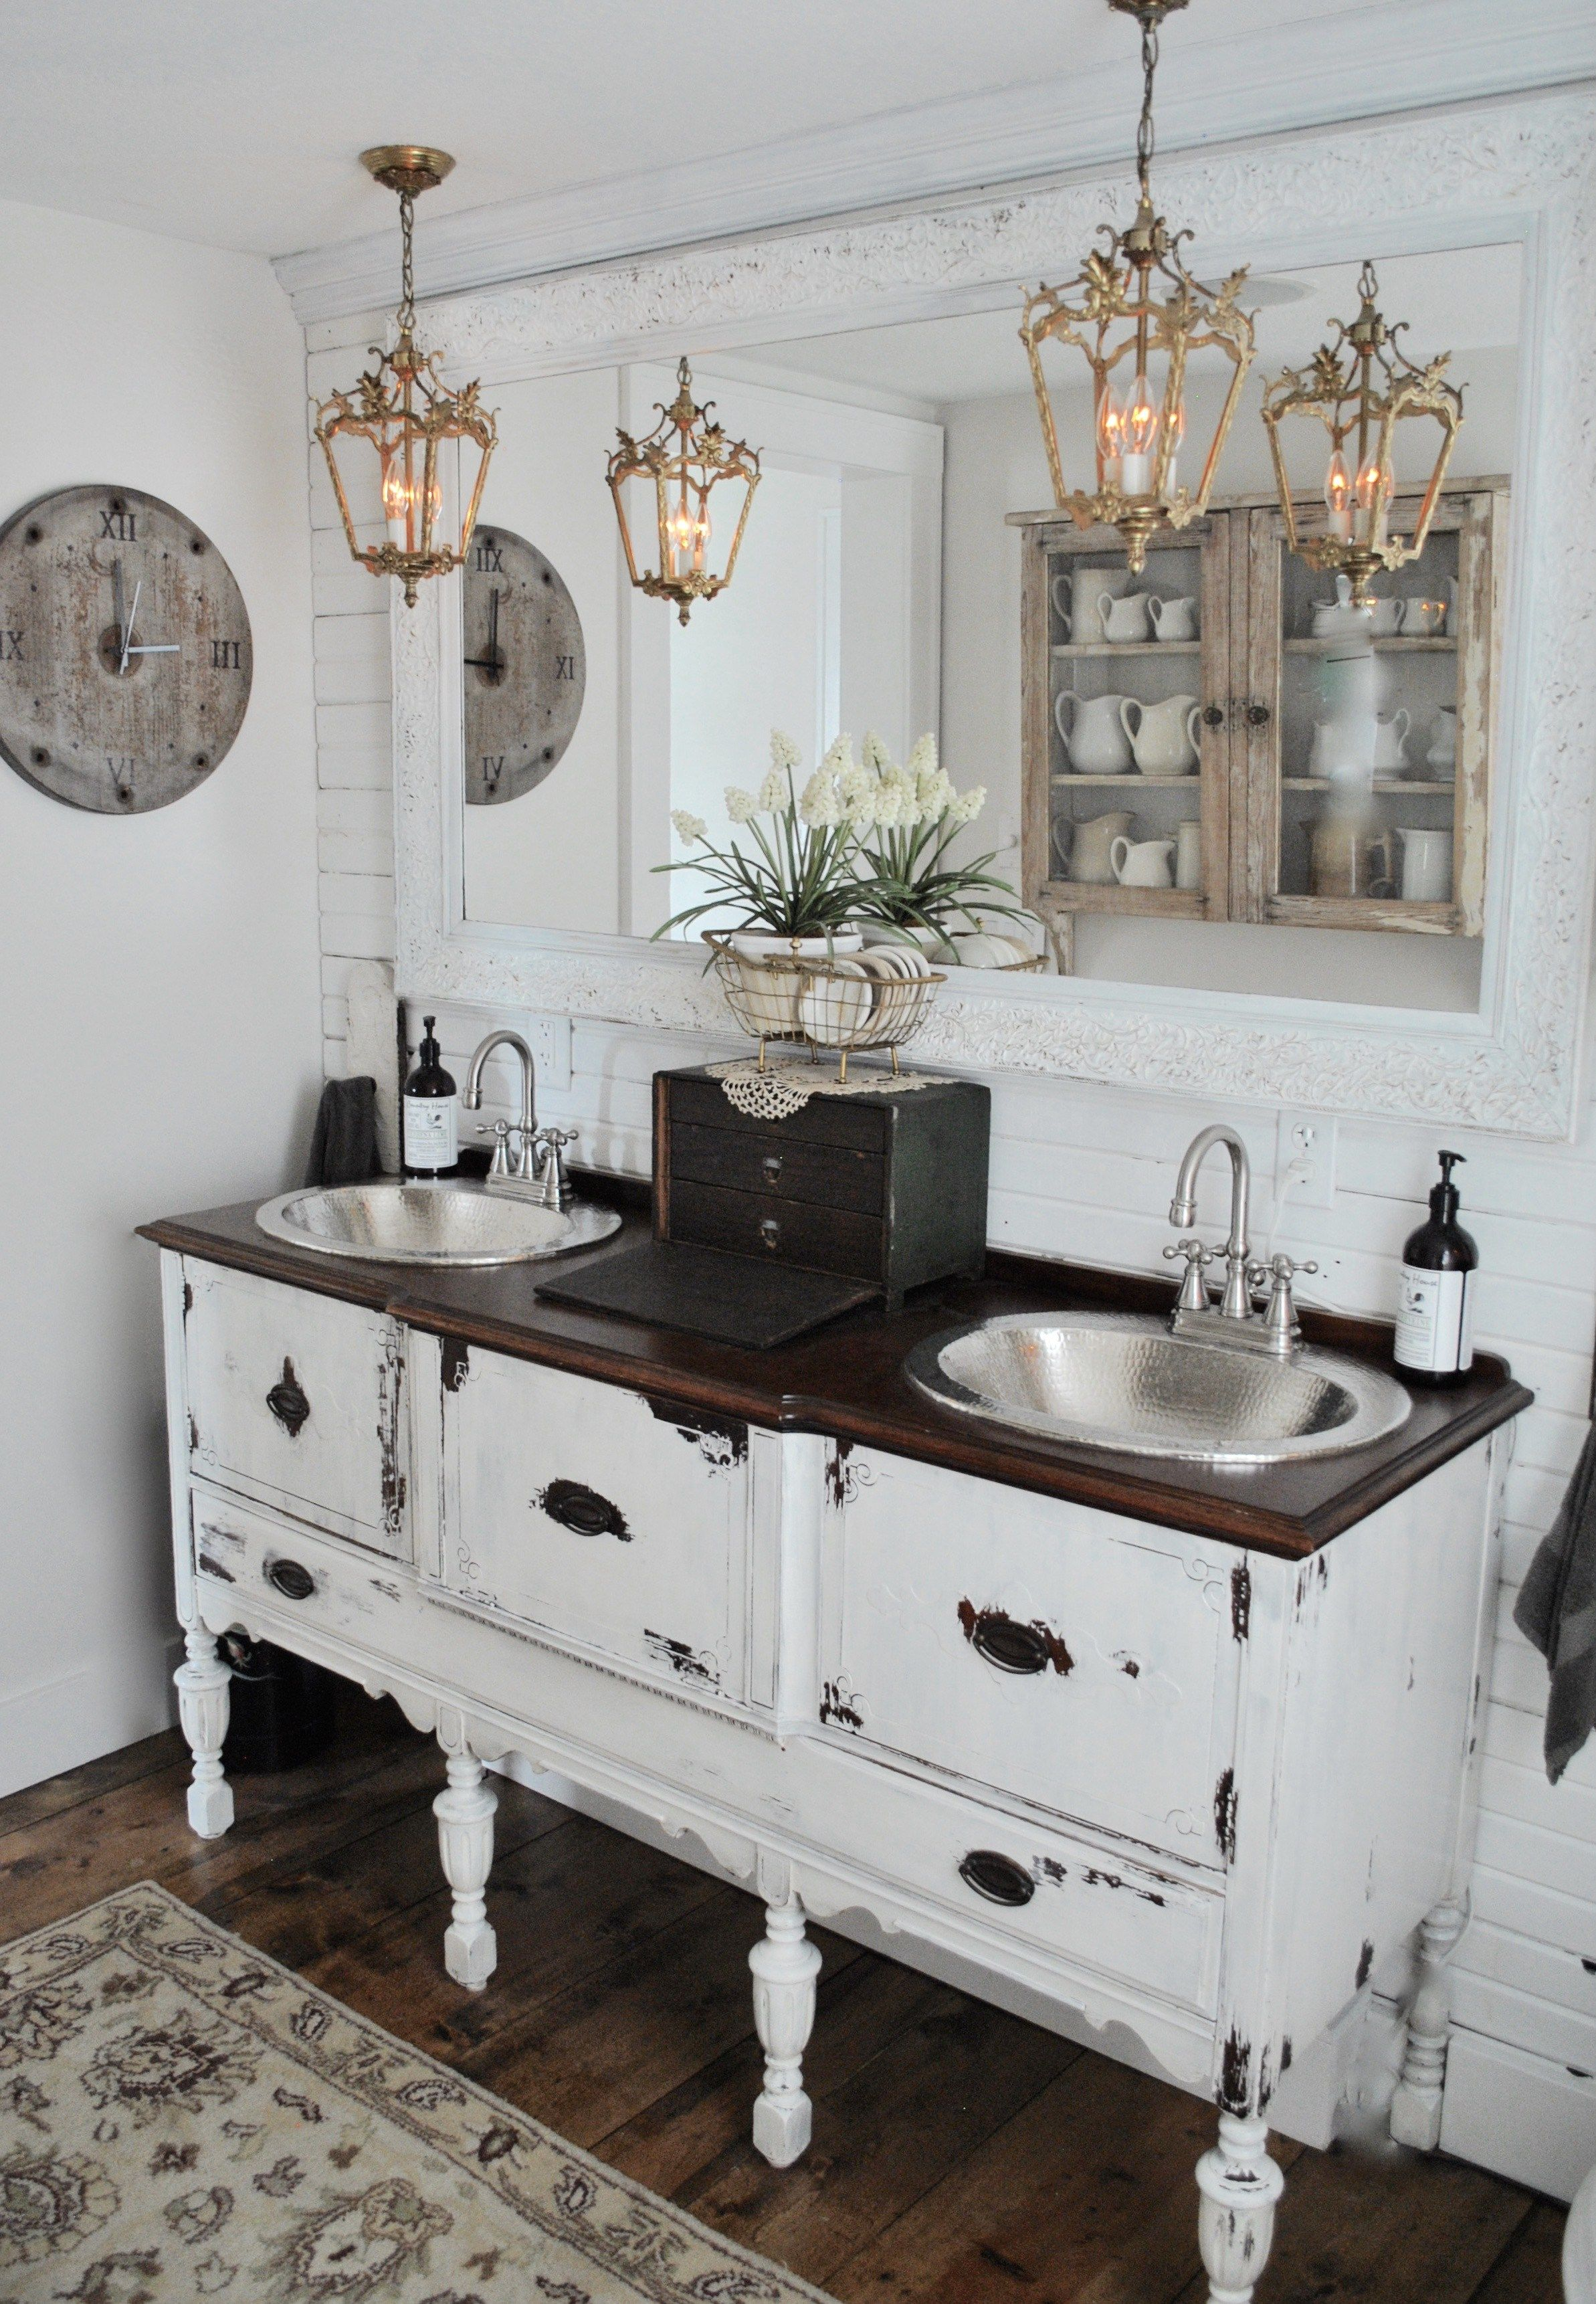 open bathroom sink lovely elegant farmhouse vanity download farm image shelf design stunning charming style of double faucet